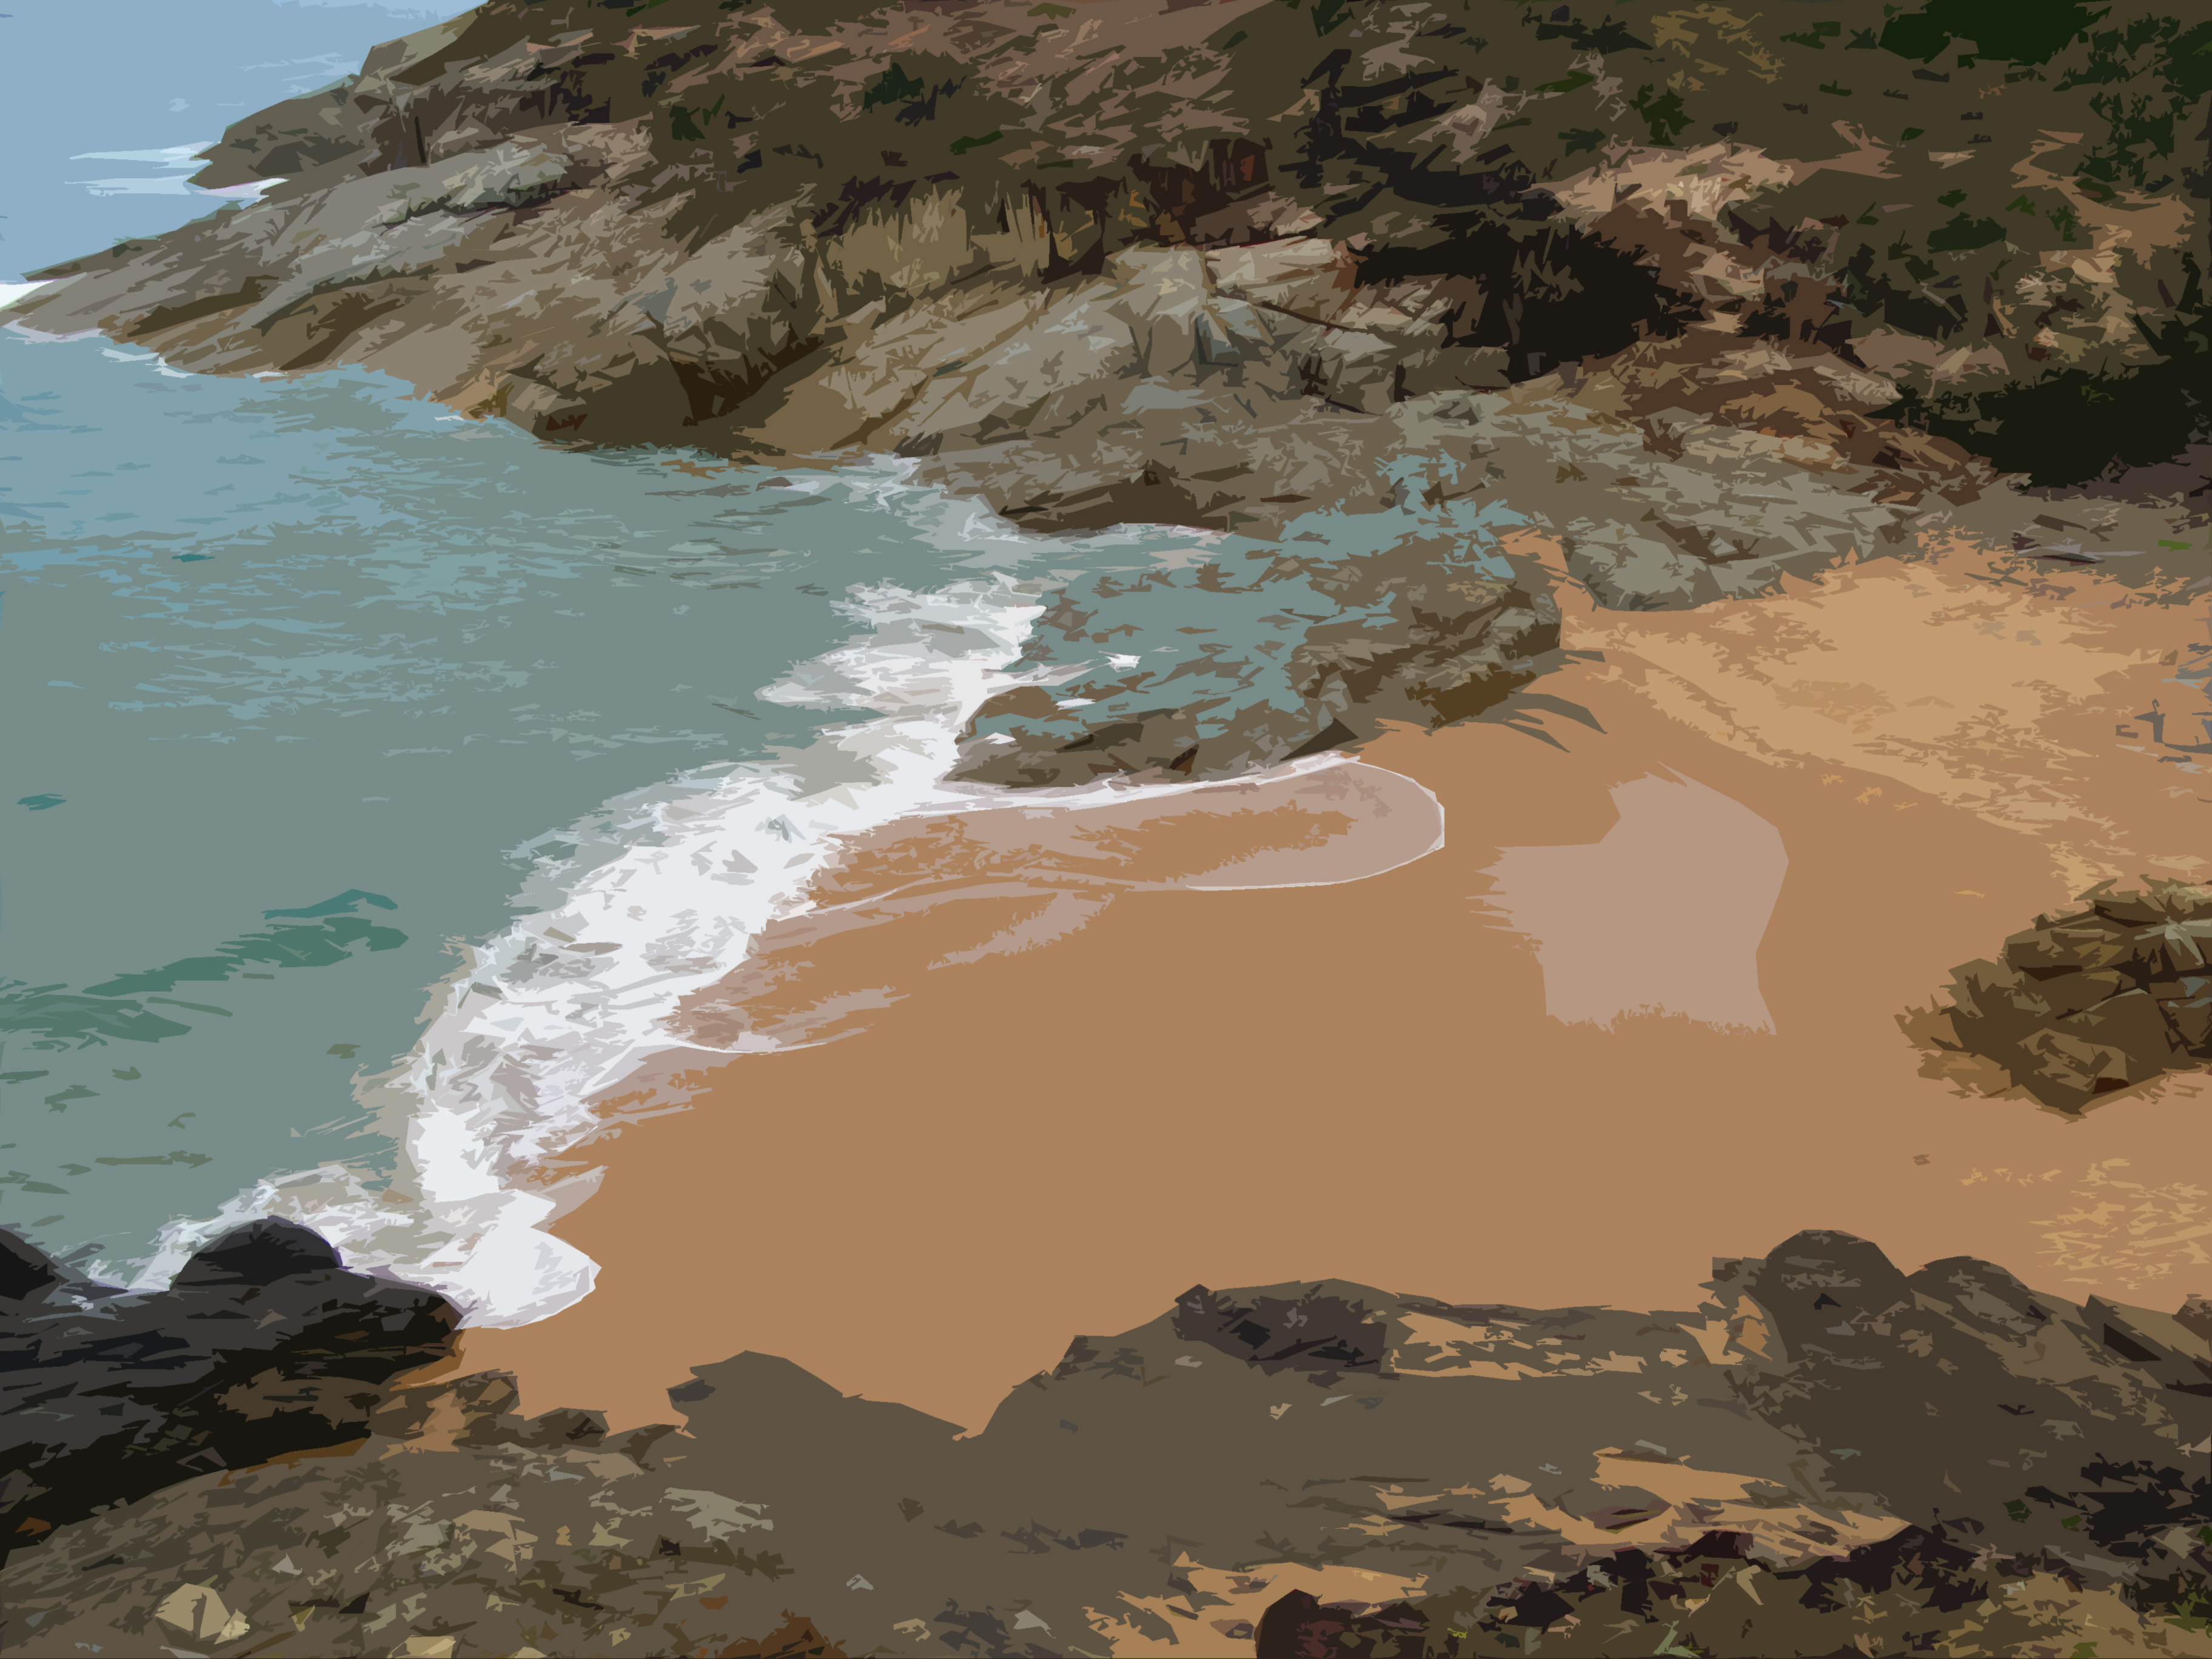 illustrated beach with rocks and breaking wave